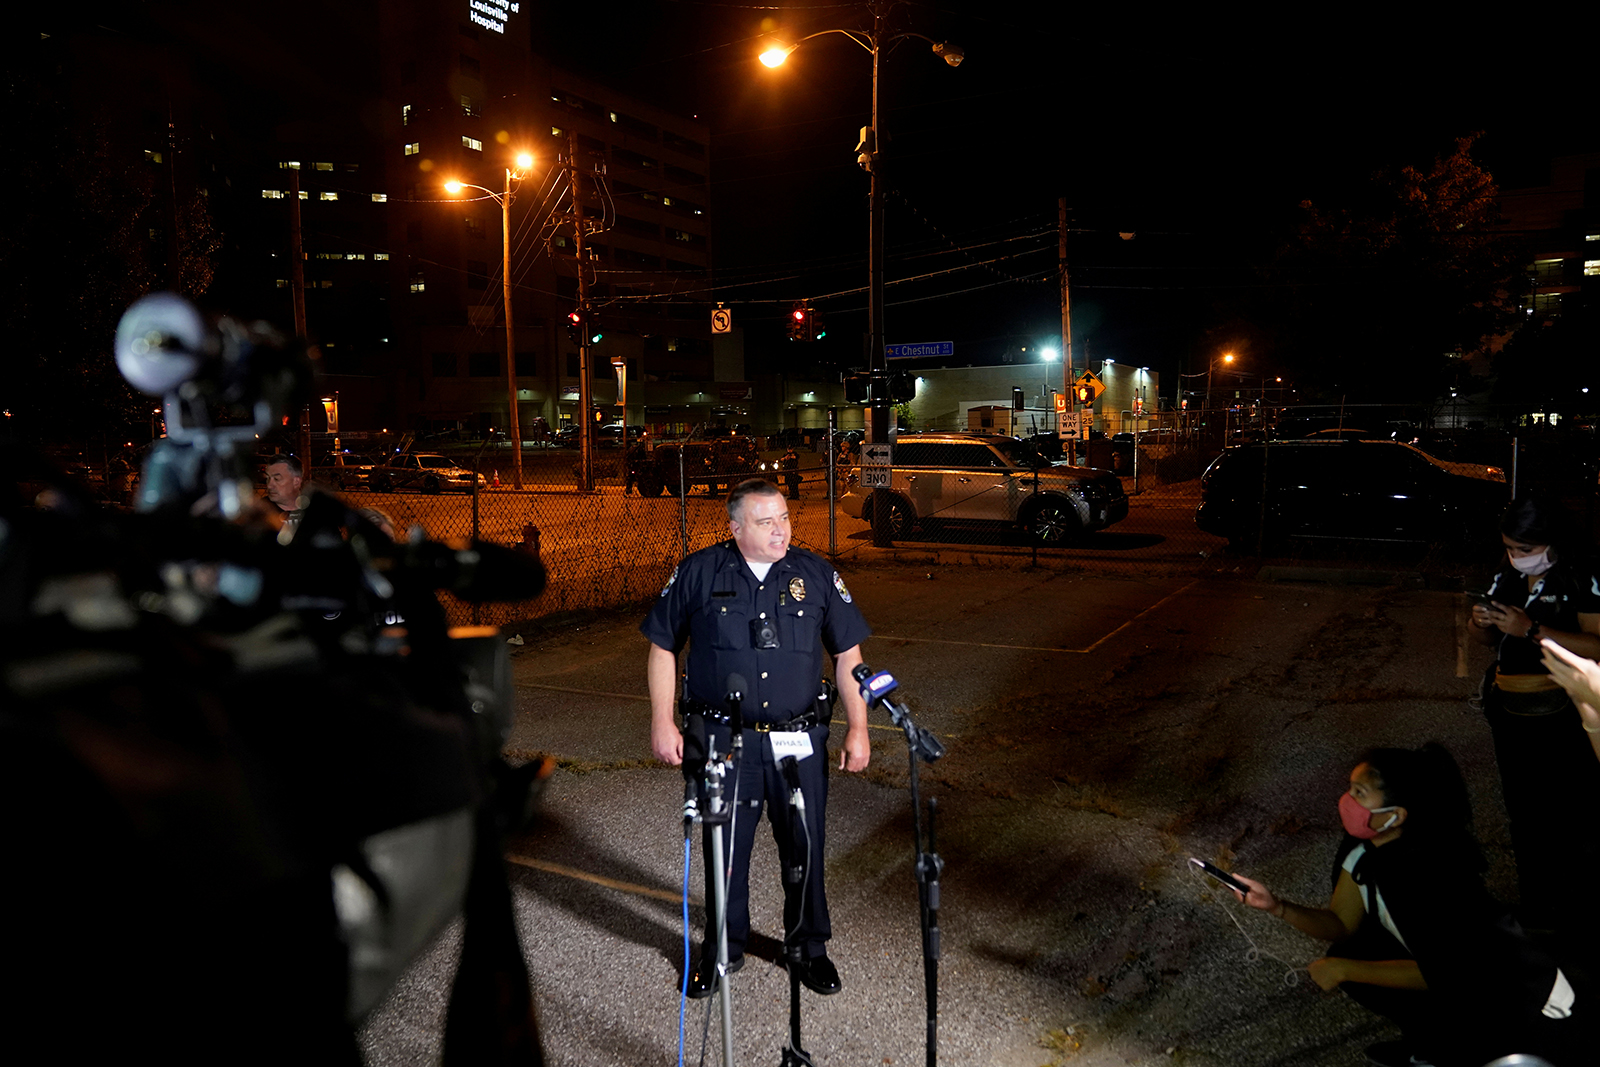 Louisville Metro Police Department Interim Police Chief Robert Schroeder speaks to the media as he confirms two officers have been shot, after protesters clashed with police in Louisville, Kentucky, on September 23.